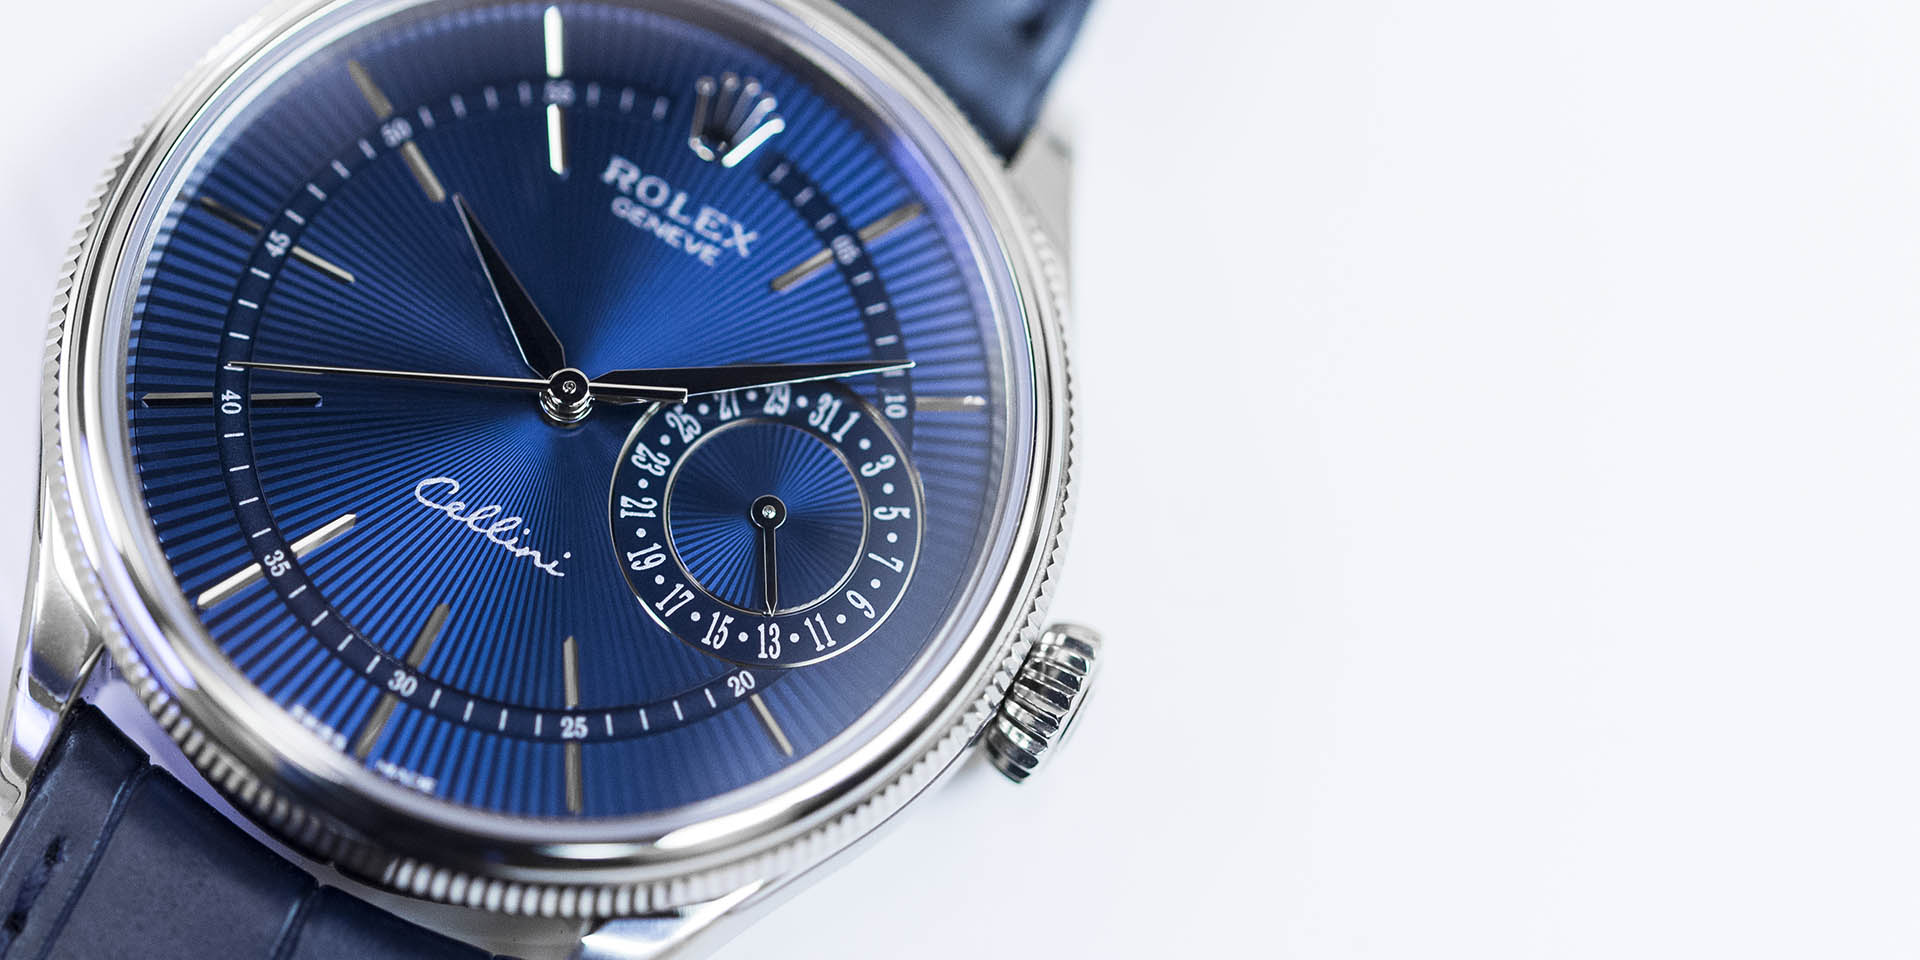 The 39 mm copy Rolex Cellini Date 50519 watches have blue dials.